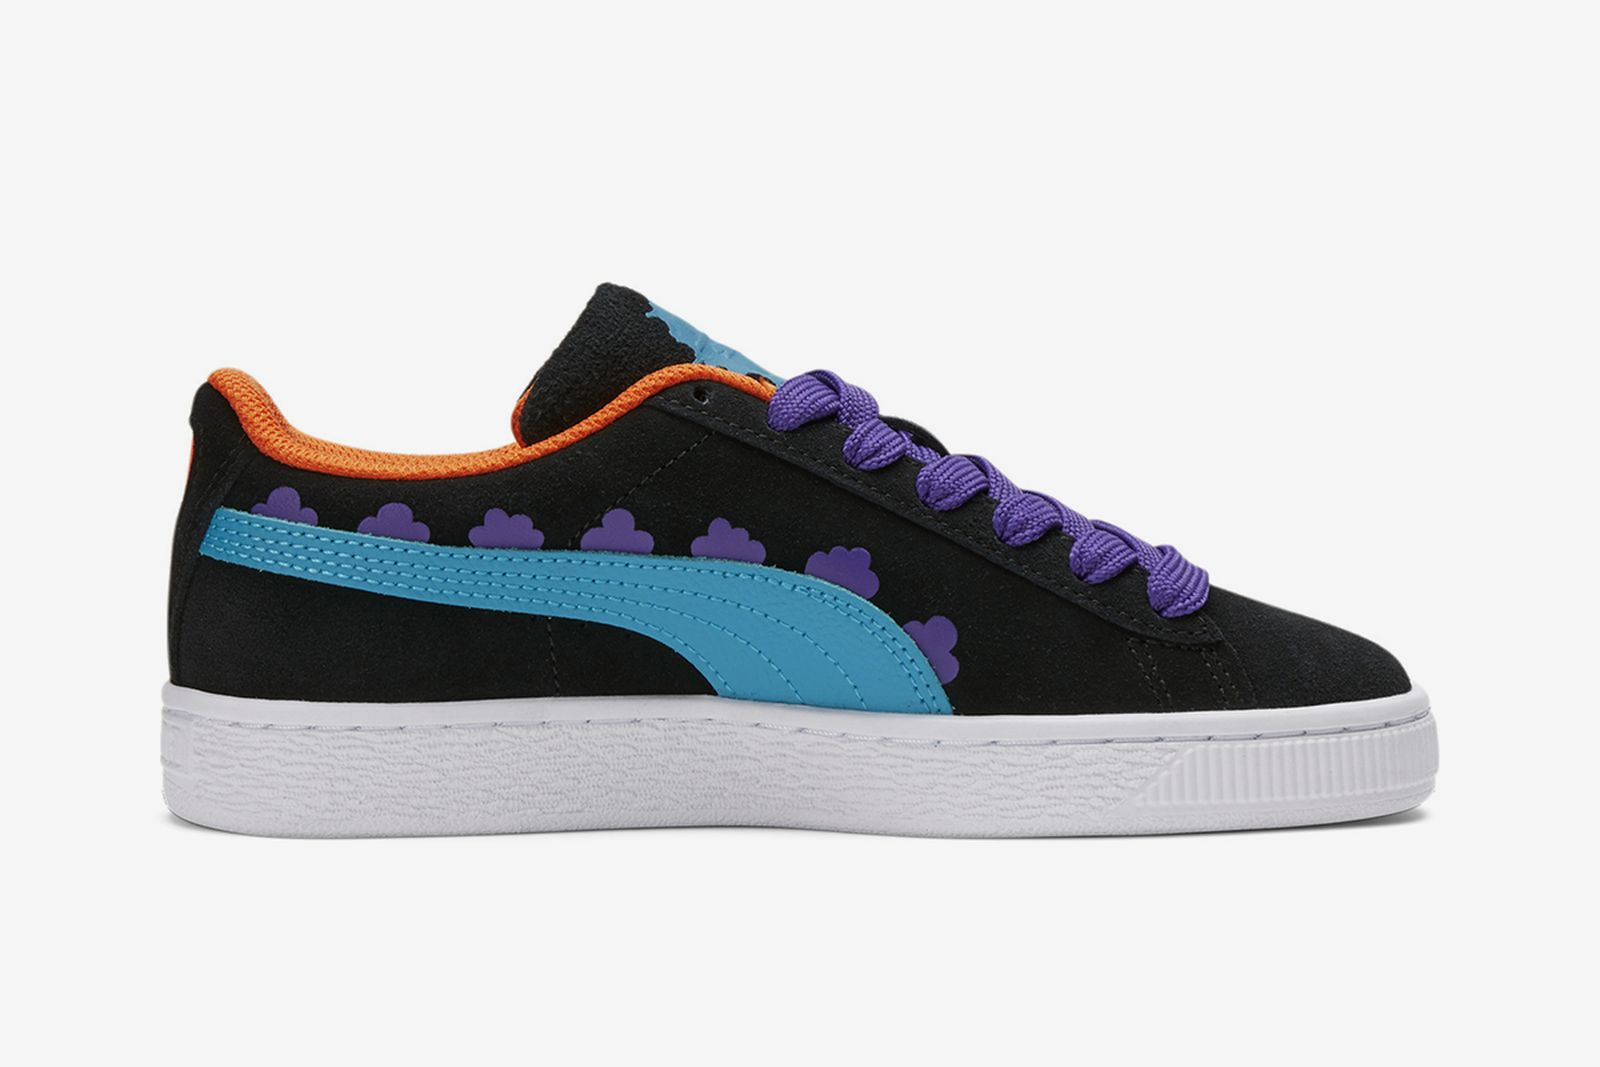 puma-rugrats-collection-release-date-price-10